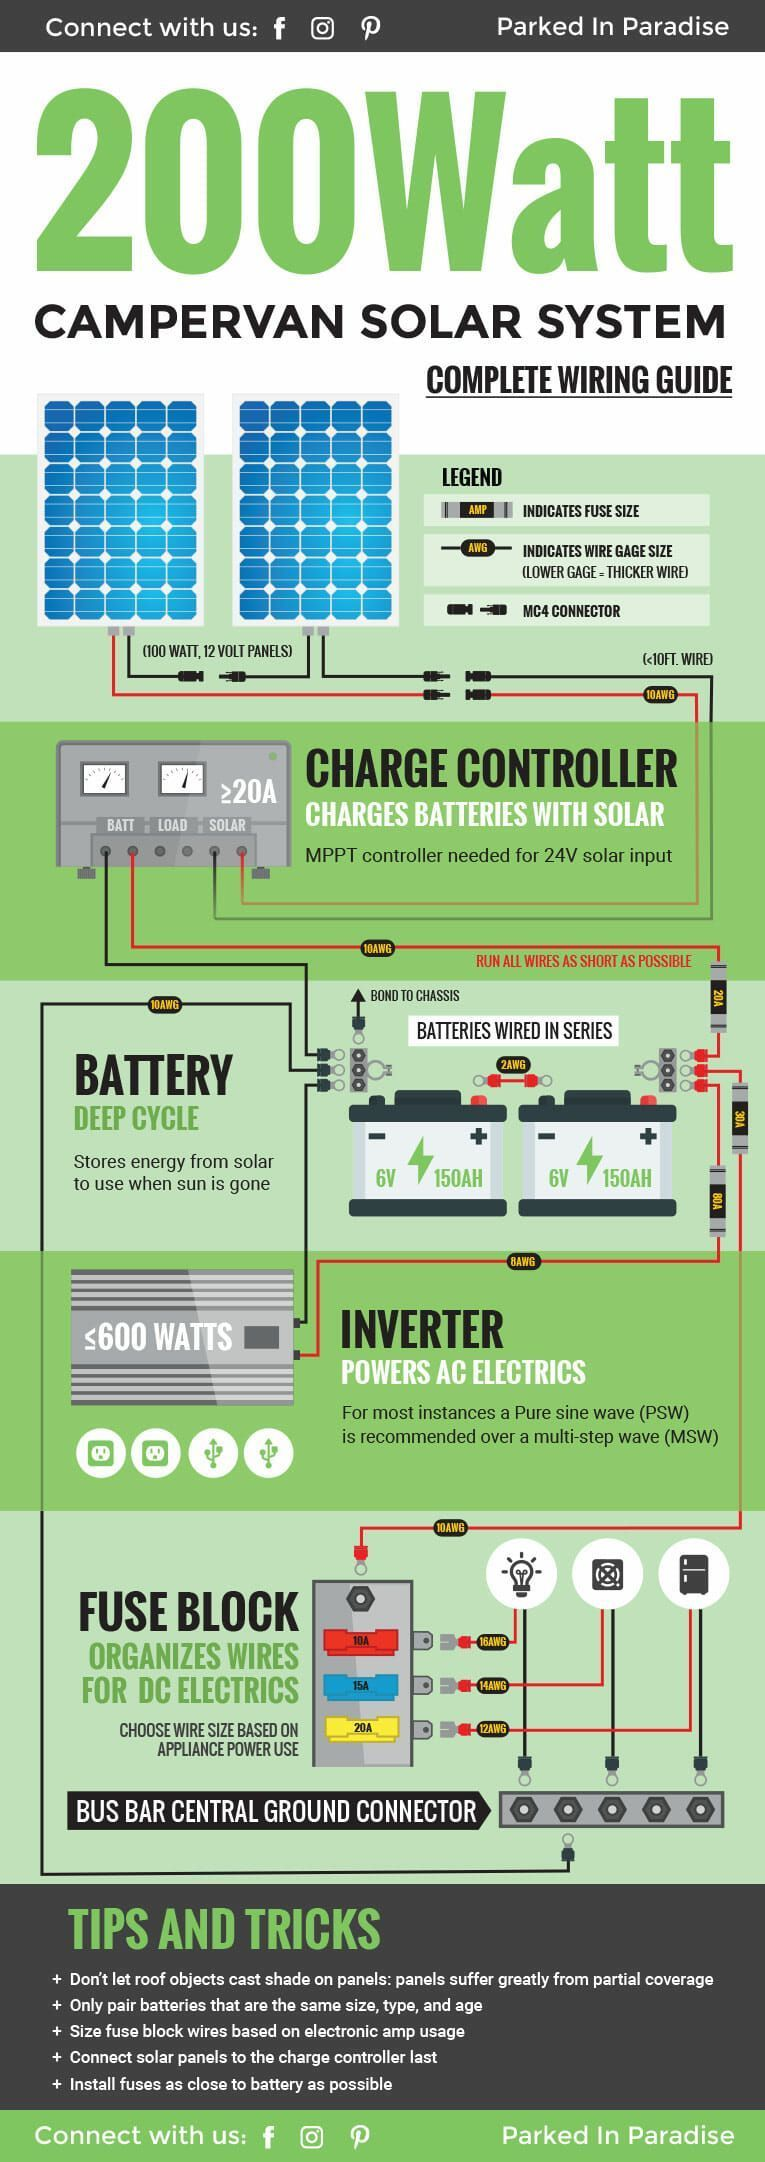 complete diy wiring guide for a 200 watt solar panel system perfect diy garage wiring [ 765 x 2162 Pixel ]